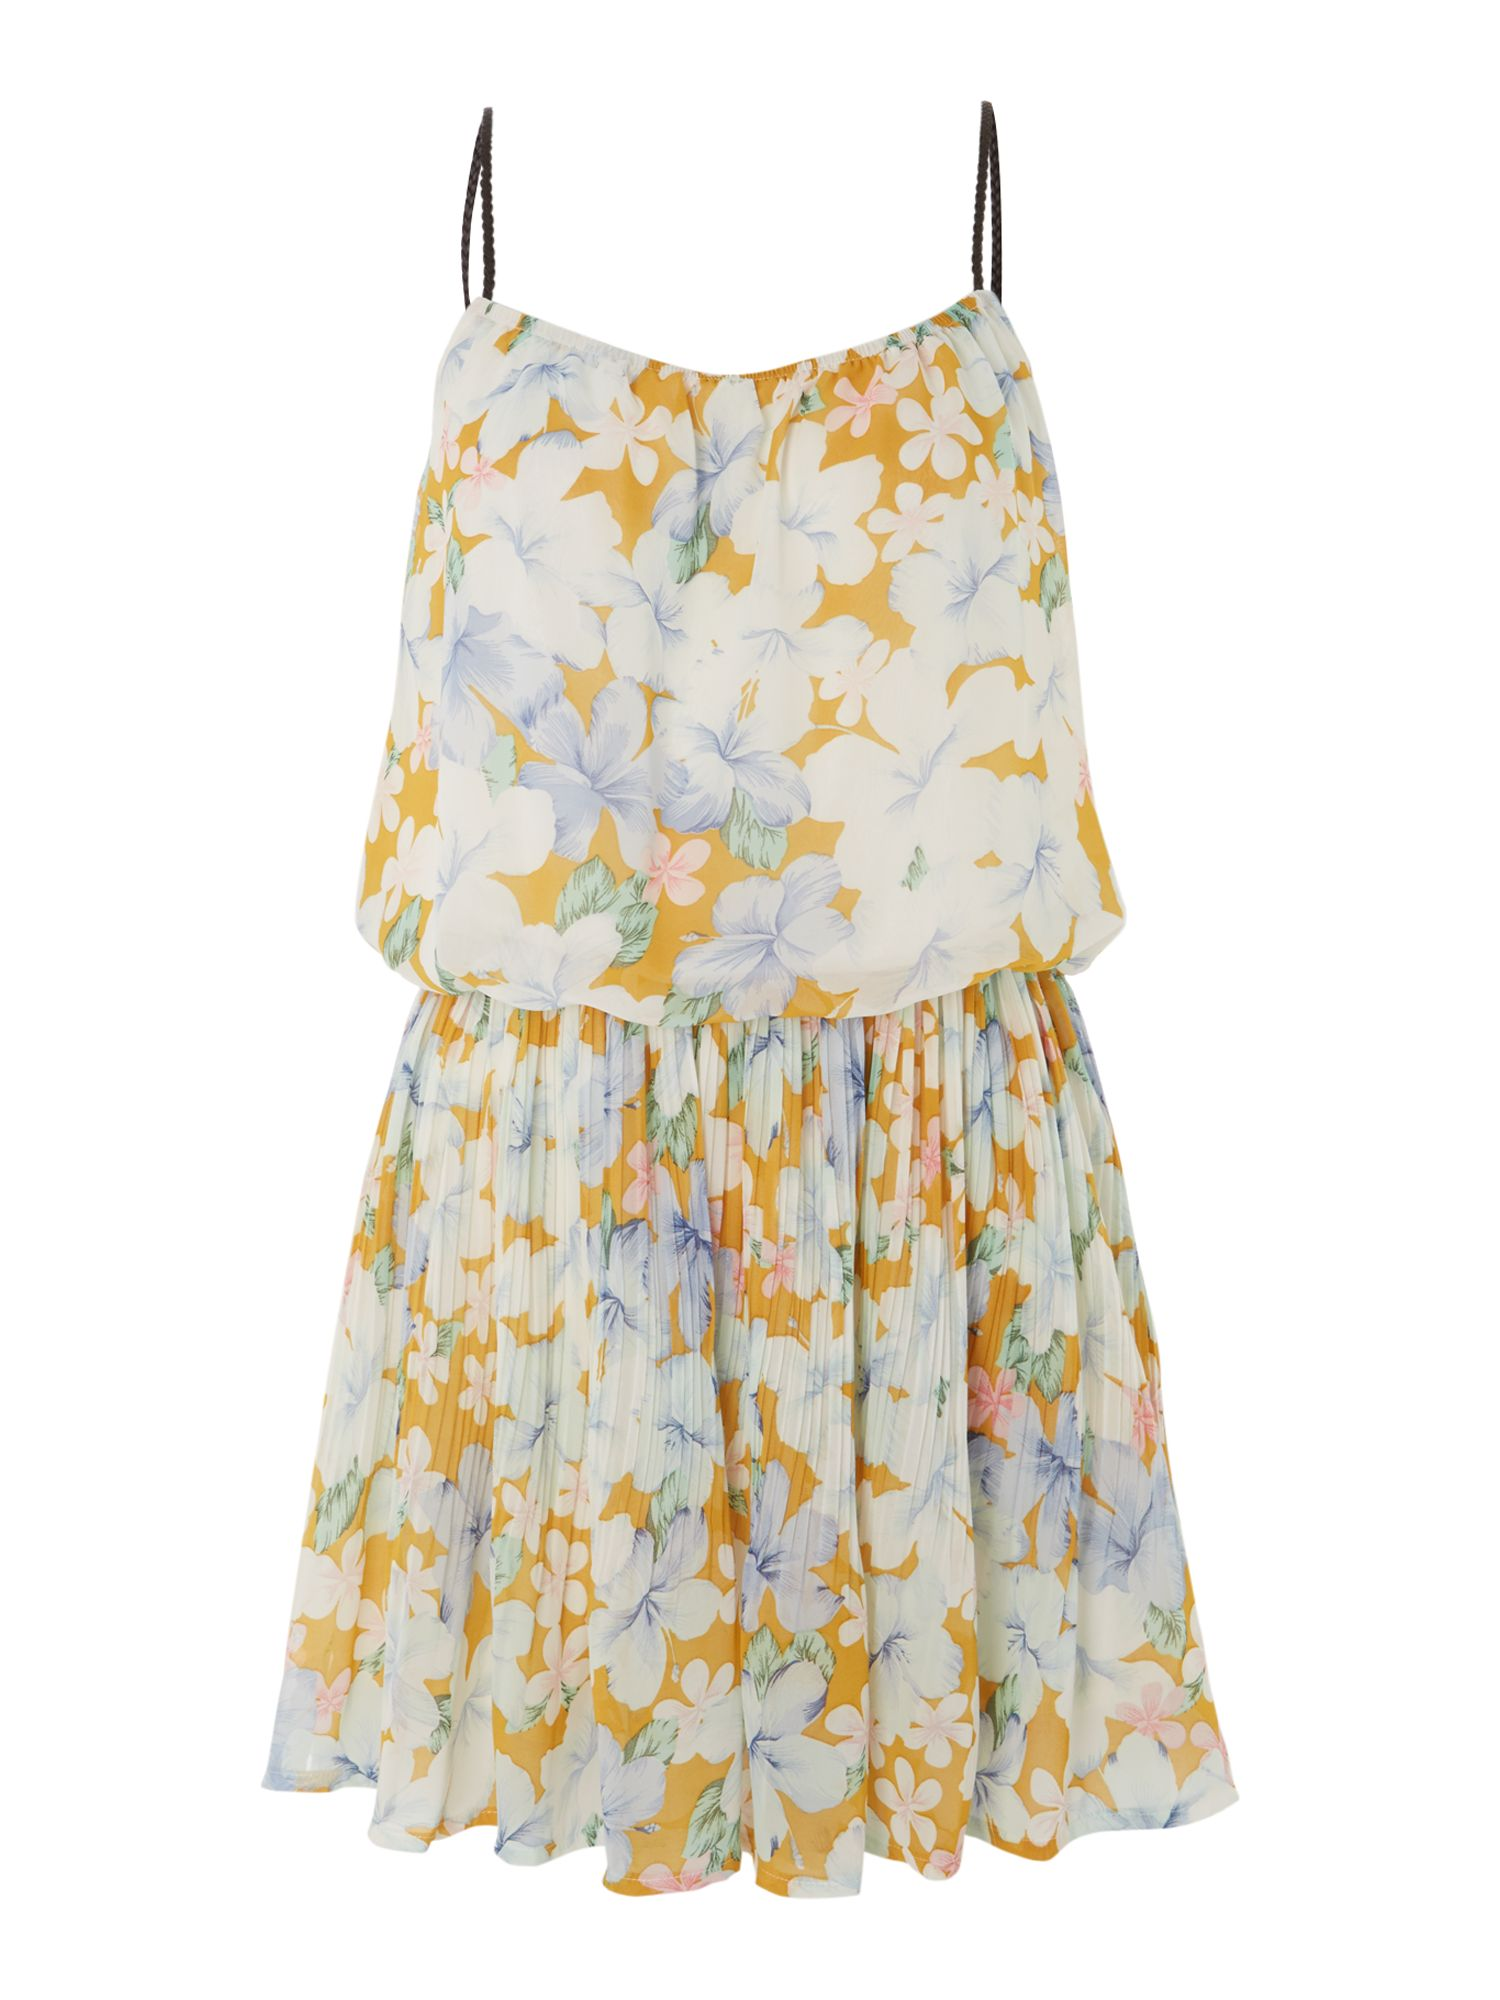 Floral strap shoulder dress